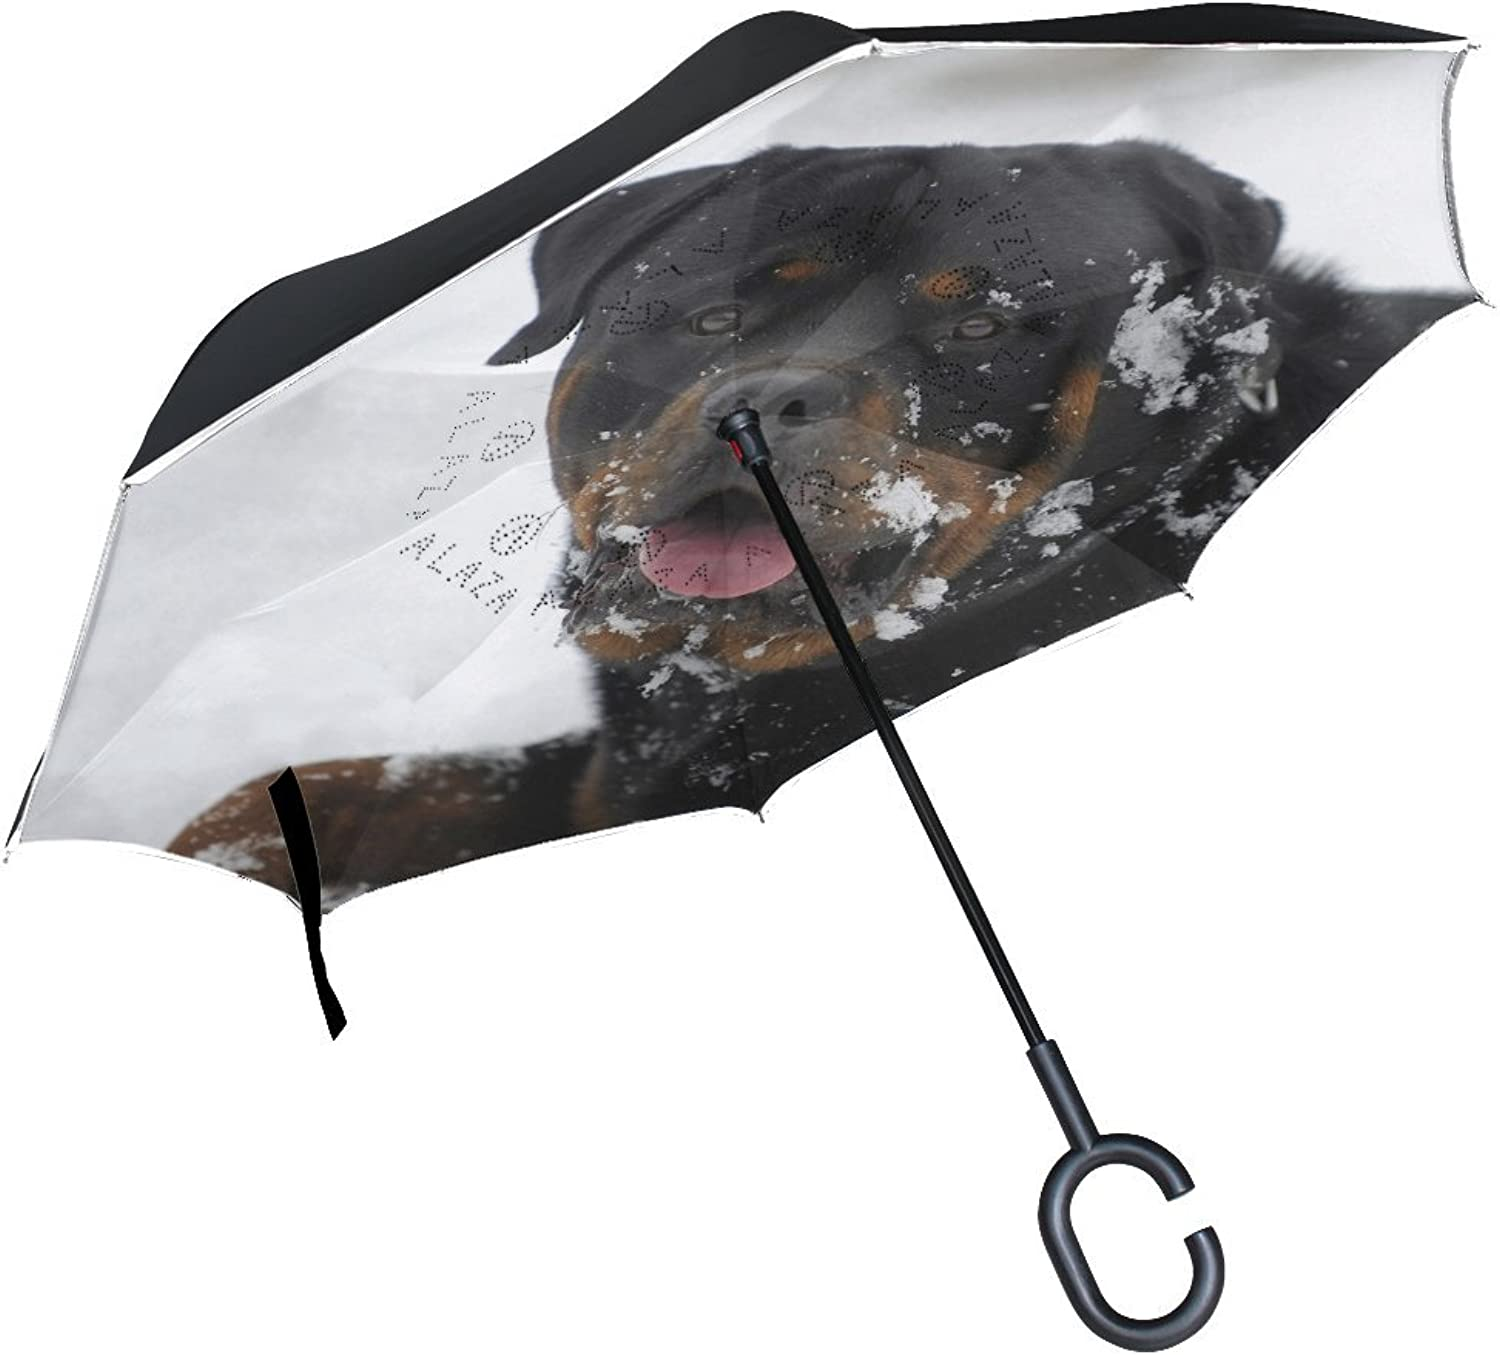 Animal Dog redtweiler Adorable Little Puppy Fluffy Cute Pet Ingreened Umbrella Large Double Layer Outdoor Rain Sun Car Reversible Umbrella